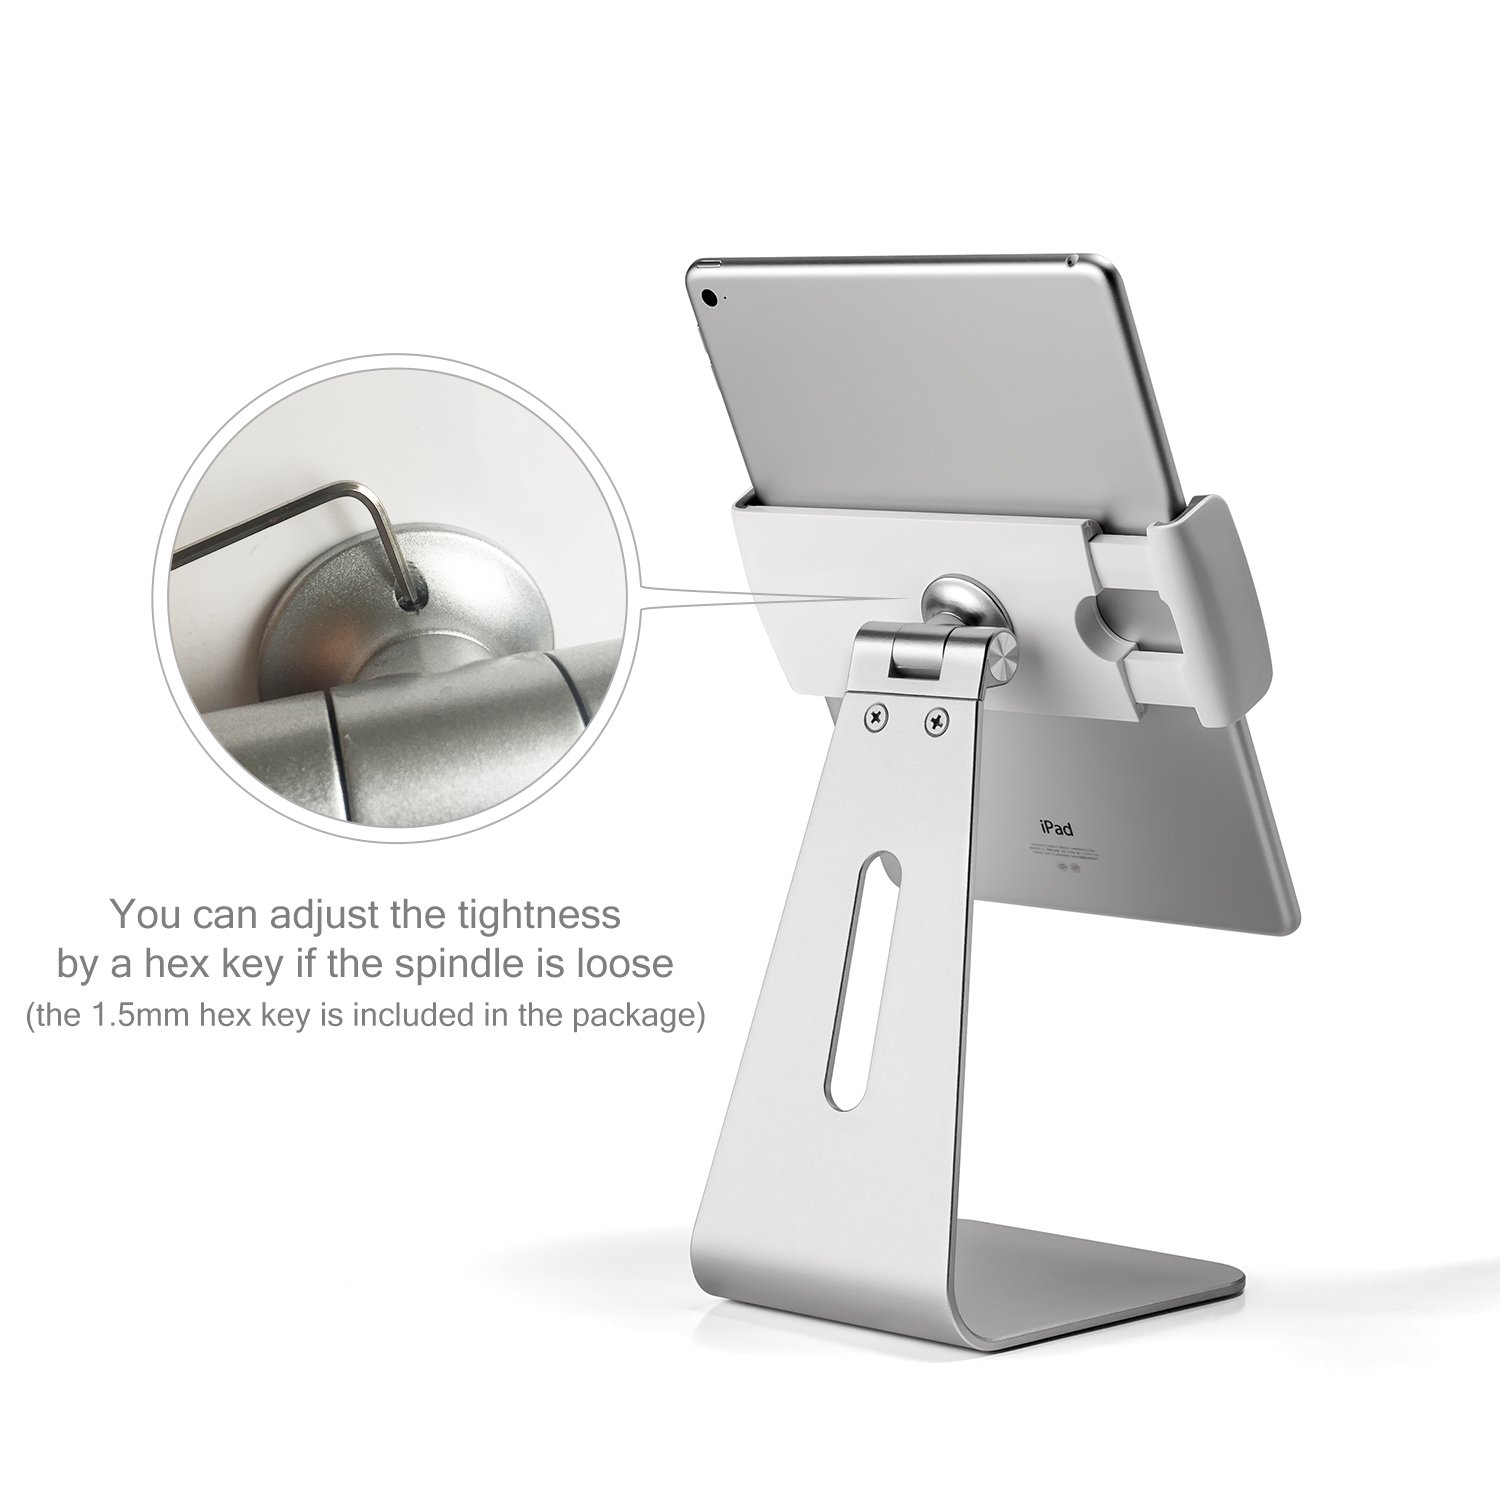 Viozon ipad Pro Stand, Tablet Stands 360° Rotatable Aluminum Alloy Desktop Mount Stand for Ipad Pro Ipad Air Ipad Mini Surface and Surface Pro by Viozon (Image #10)